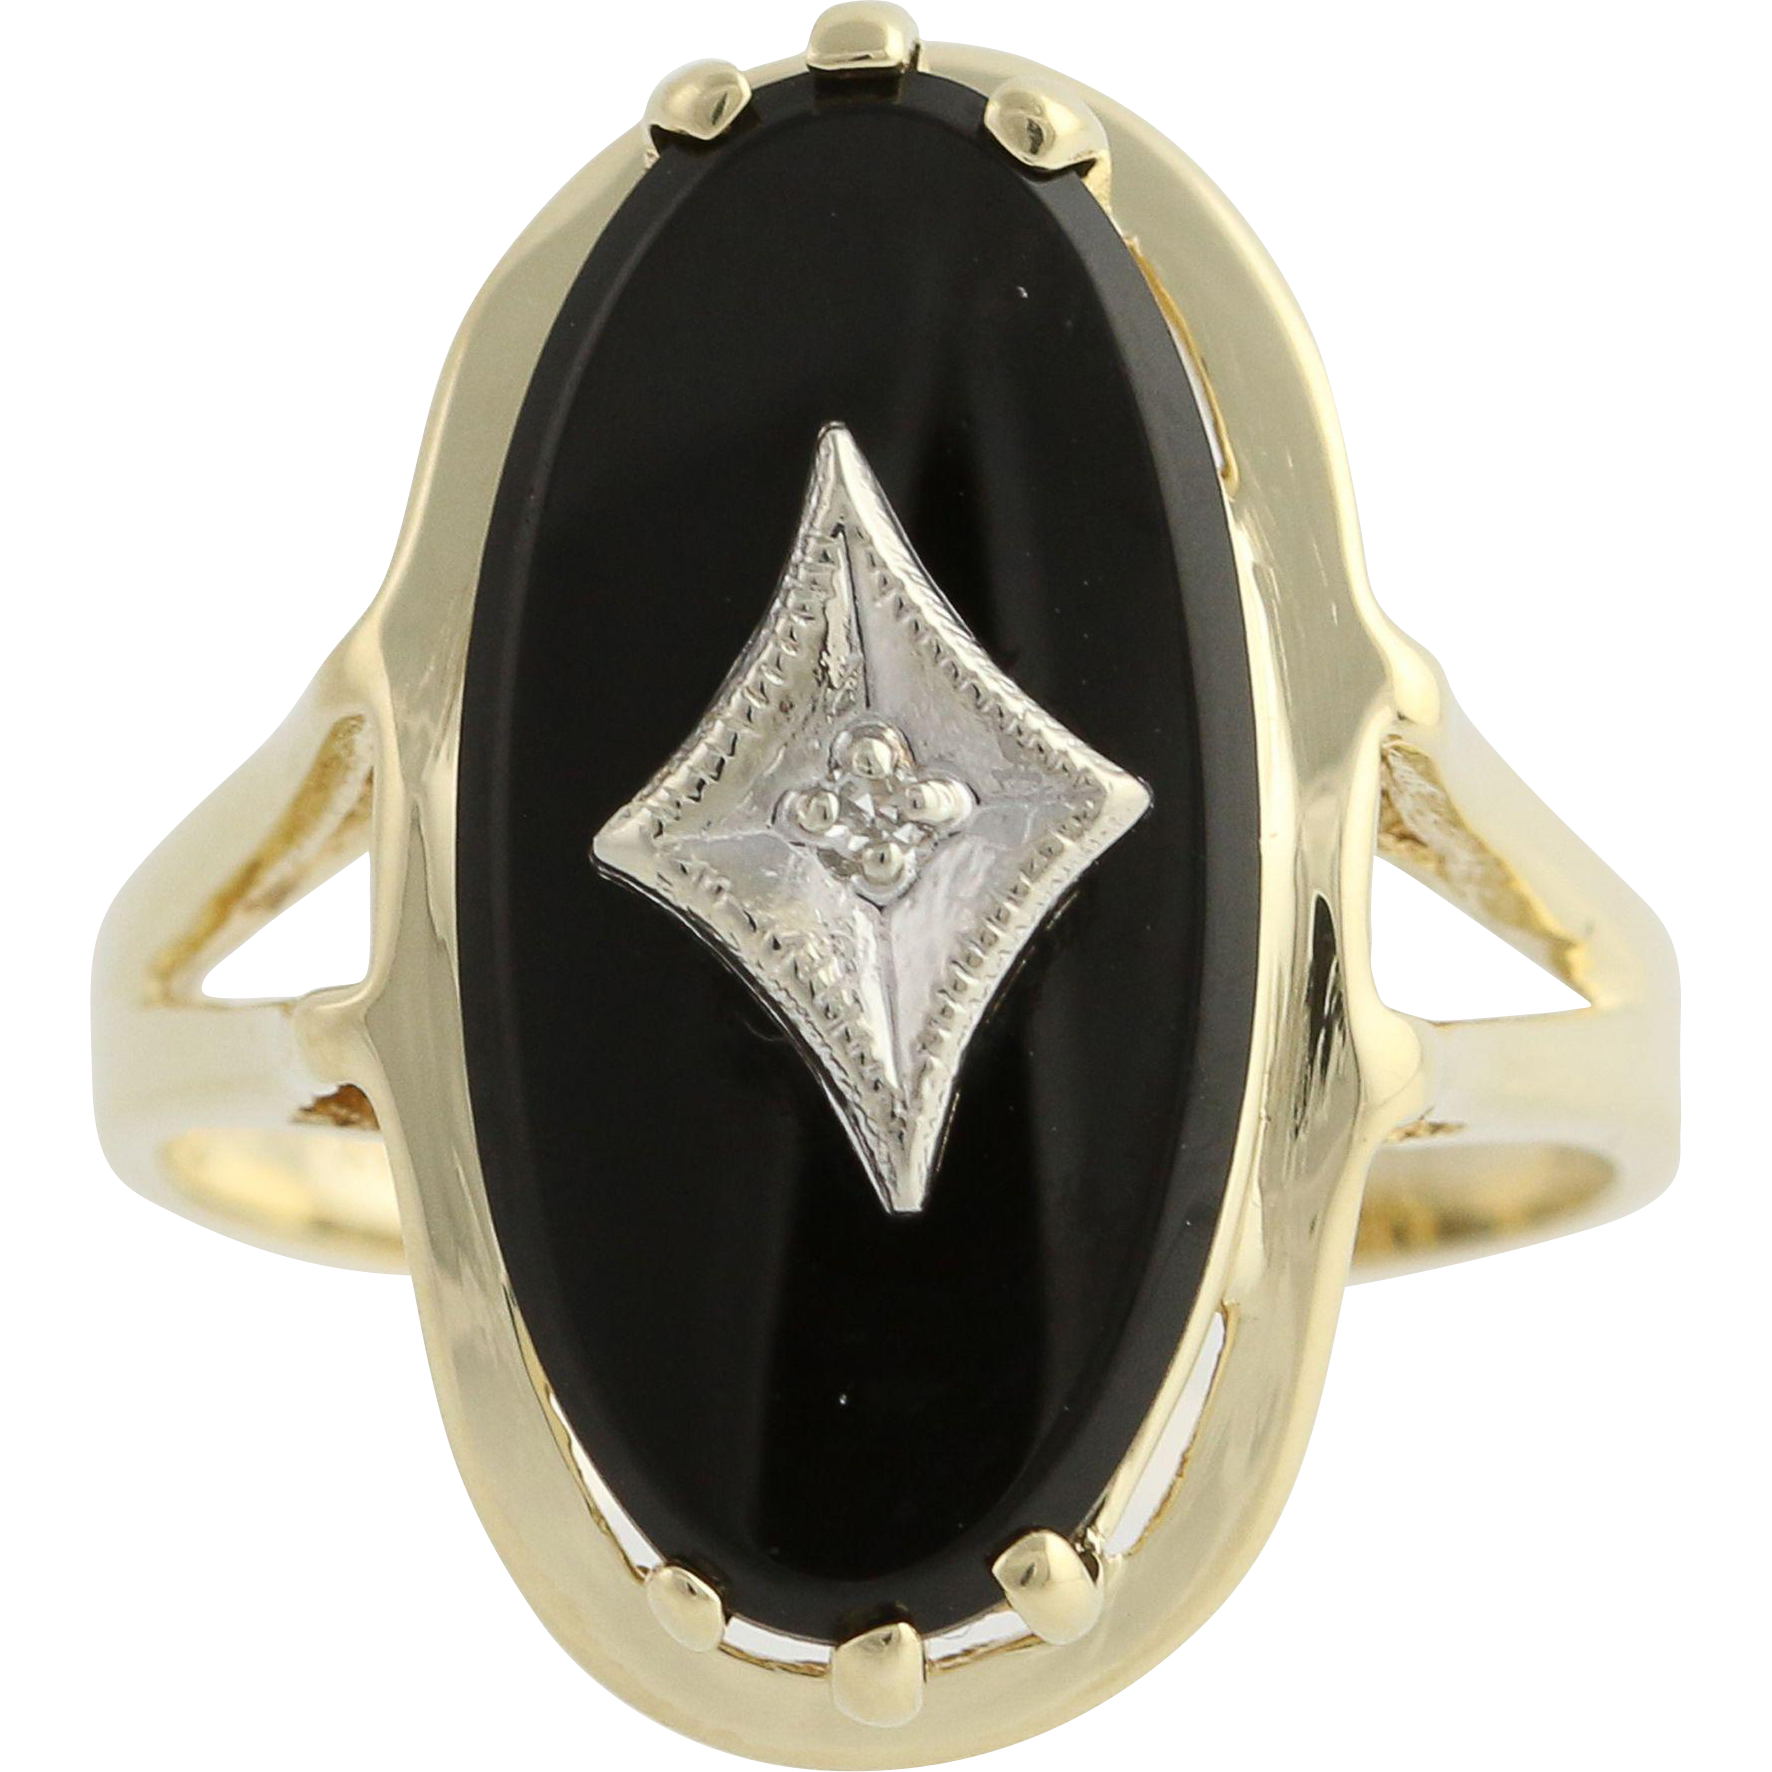 Vintage Onyx Ring w/ Diamond Accent 10k Yellow White Gold Women's Oval Solitaire